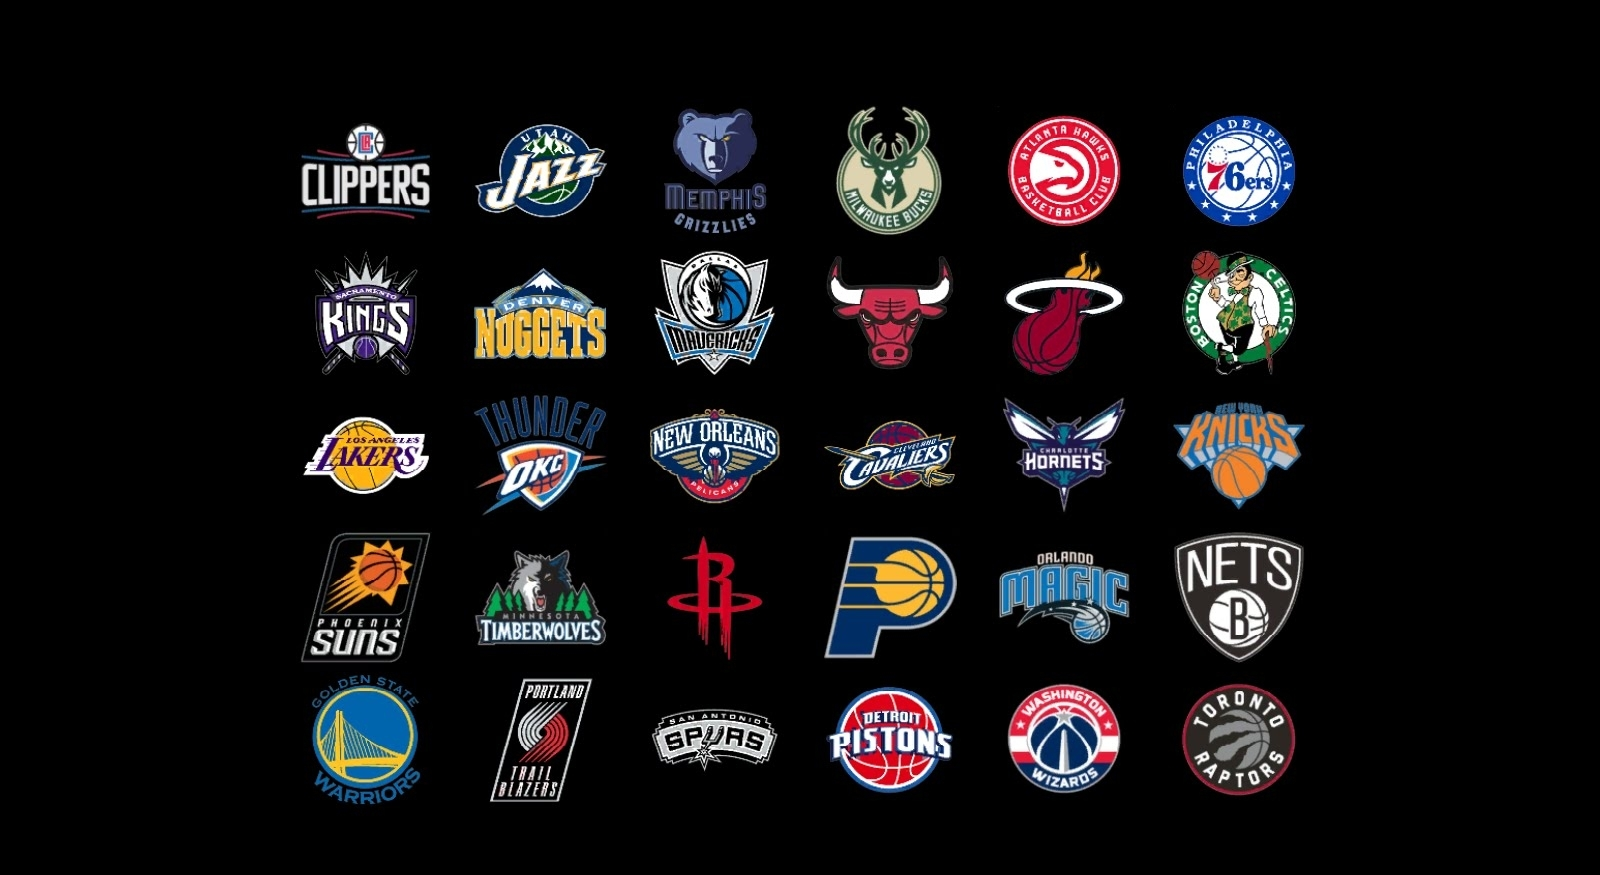 10 New Nba All Team Logos FULL HD 1920x1080 For PC Background 2018 Free DOWNLOAD